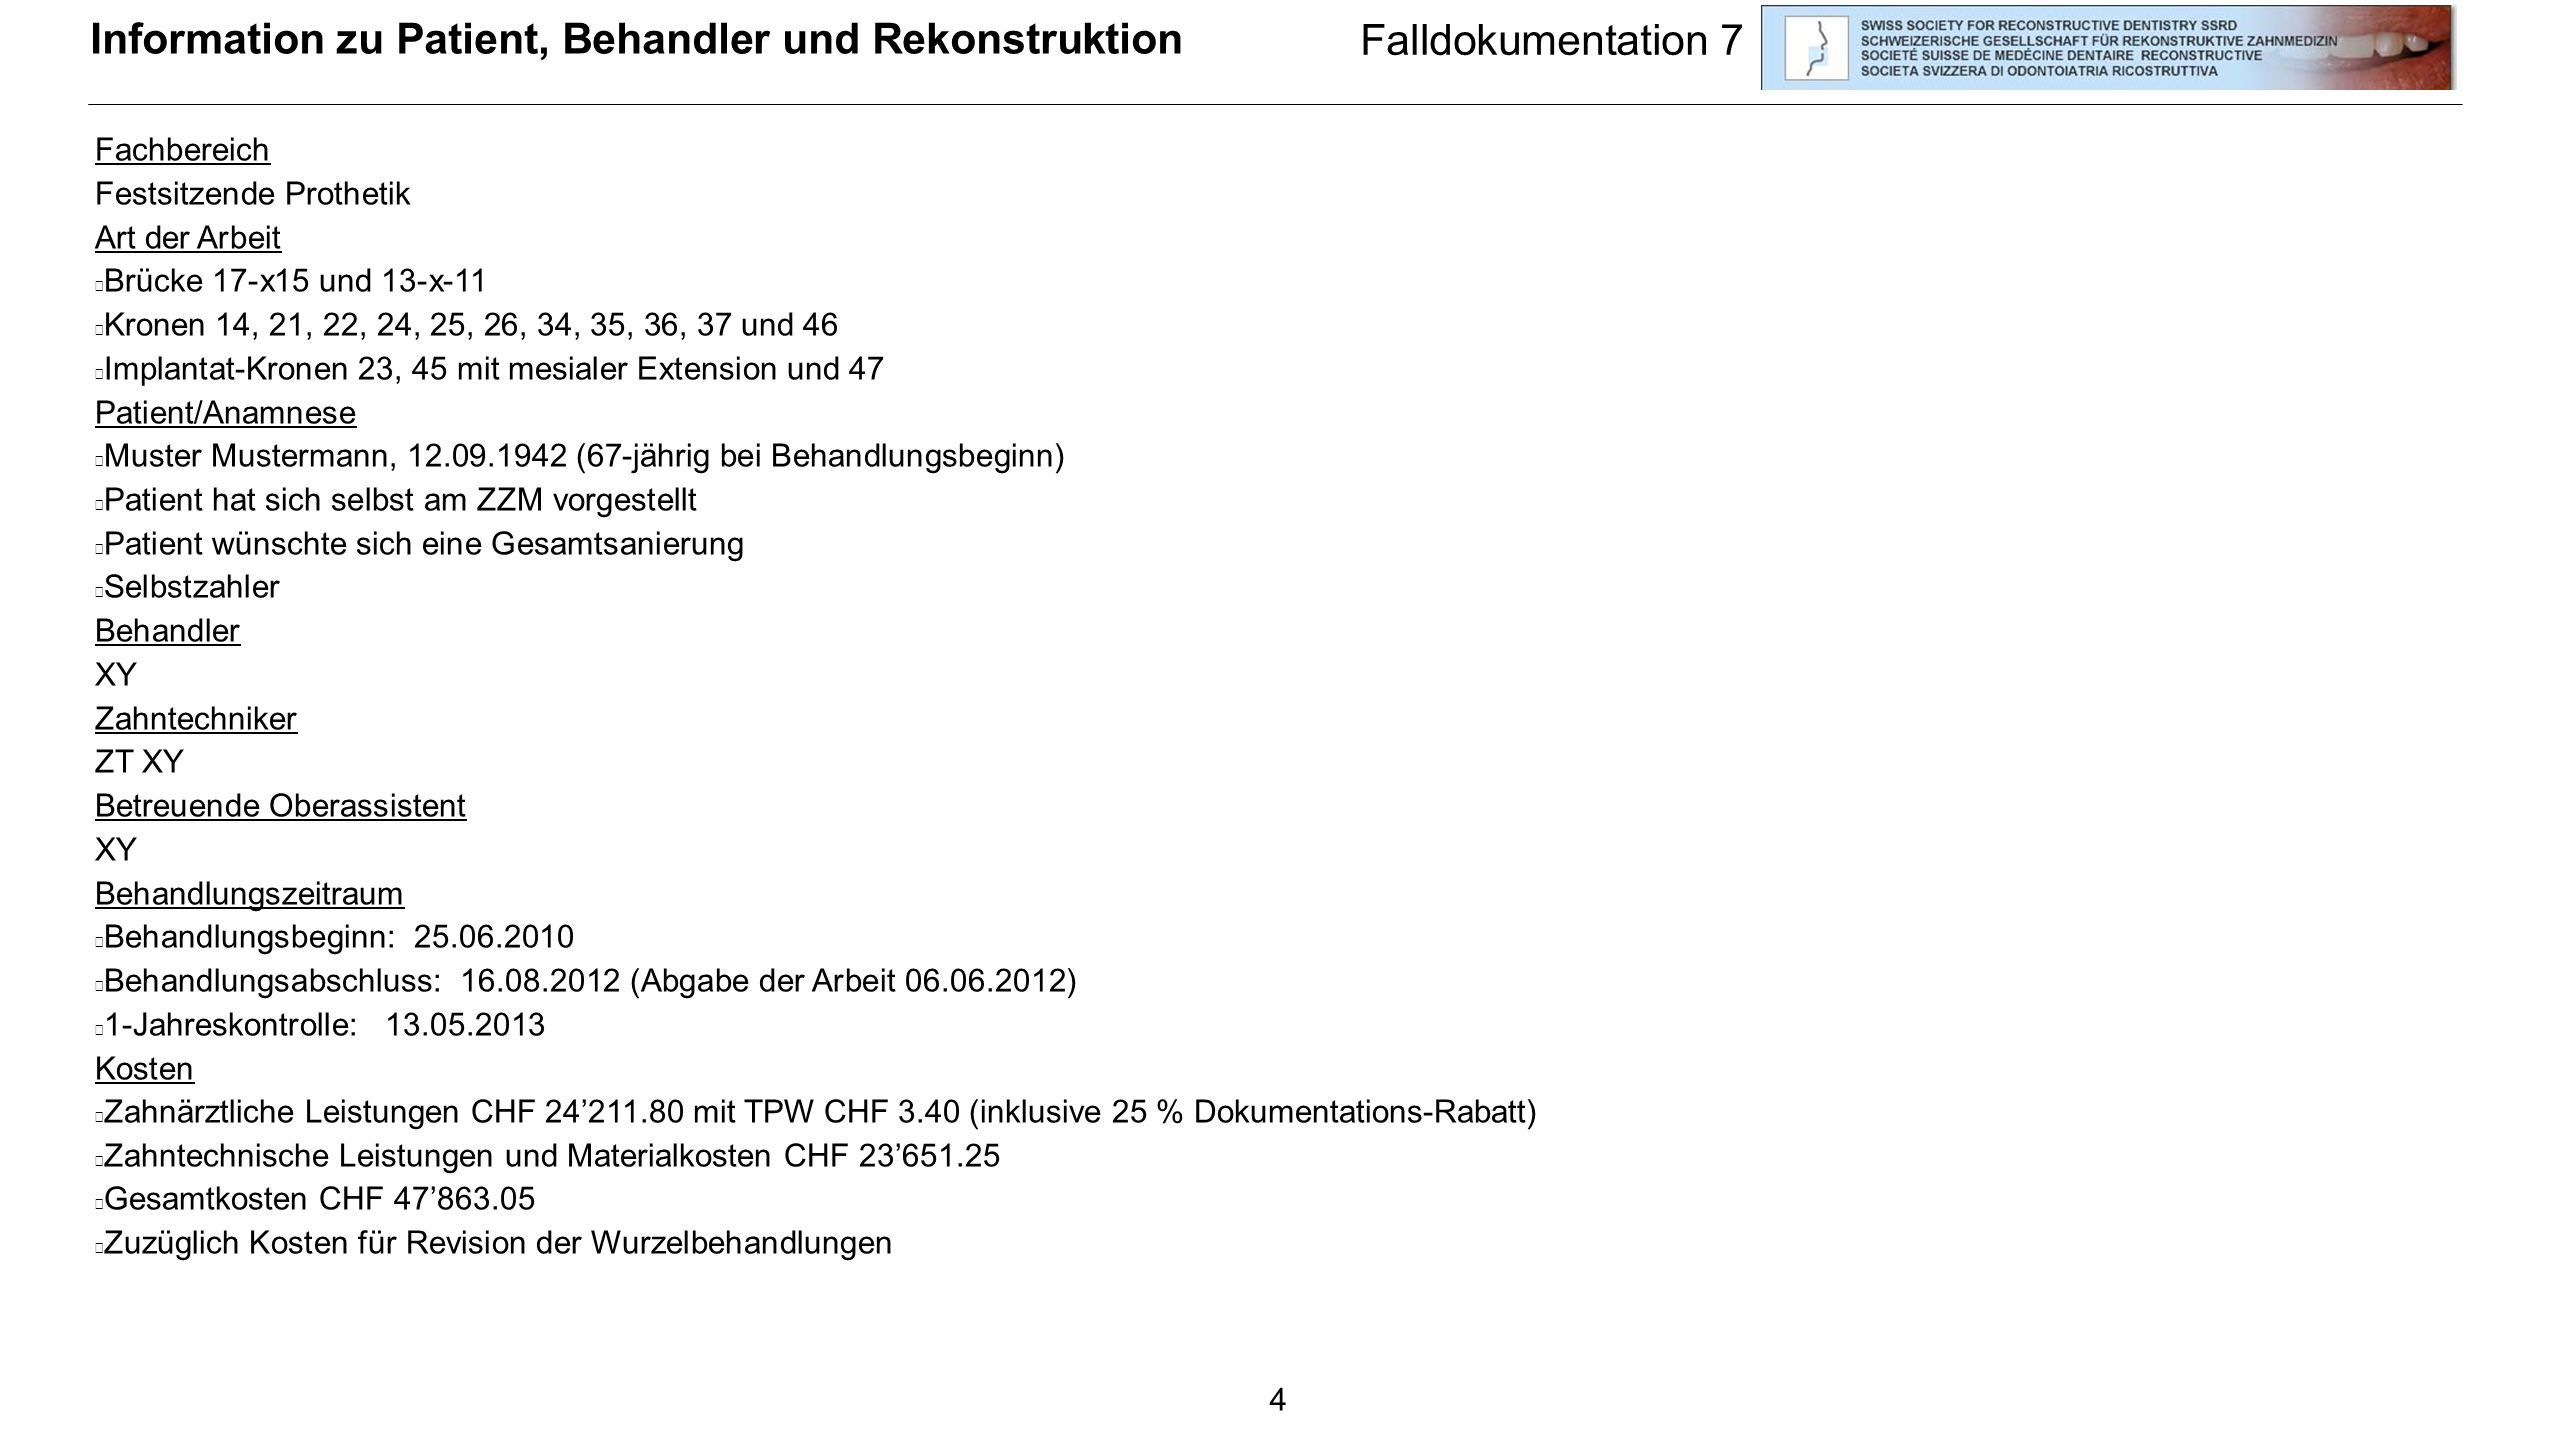 Information zu Patient, Behandler und Rekonstruktion